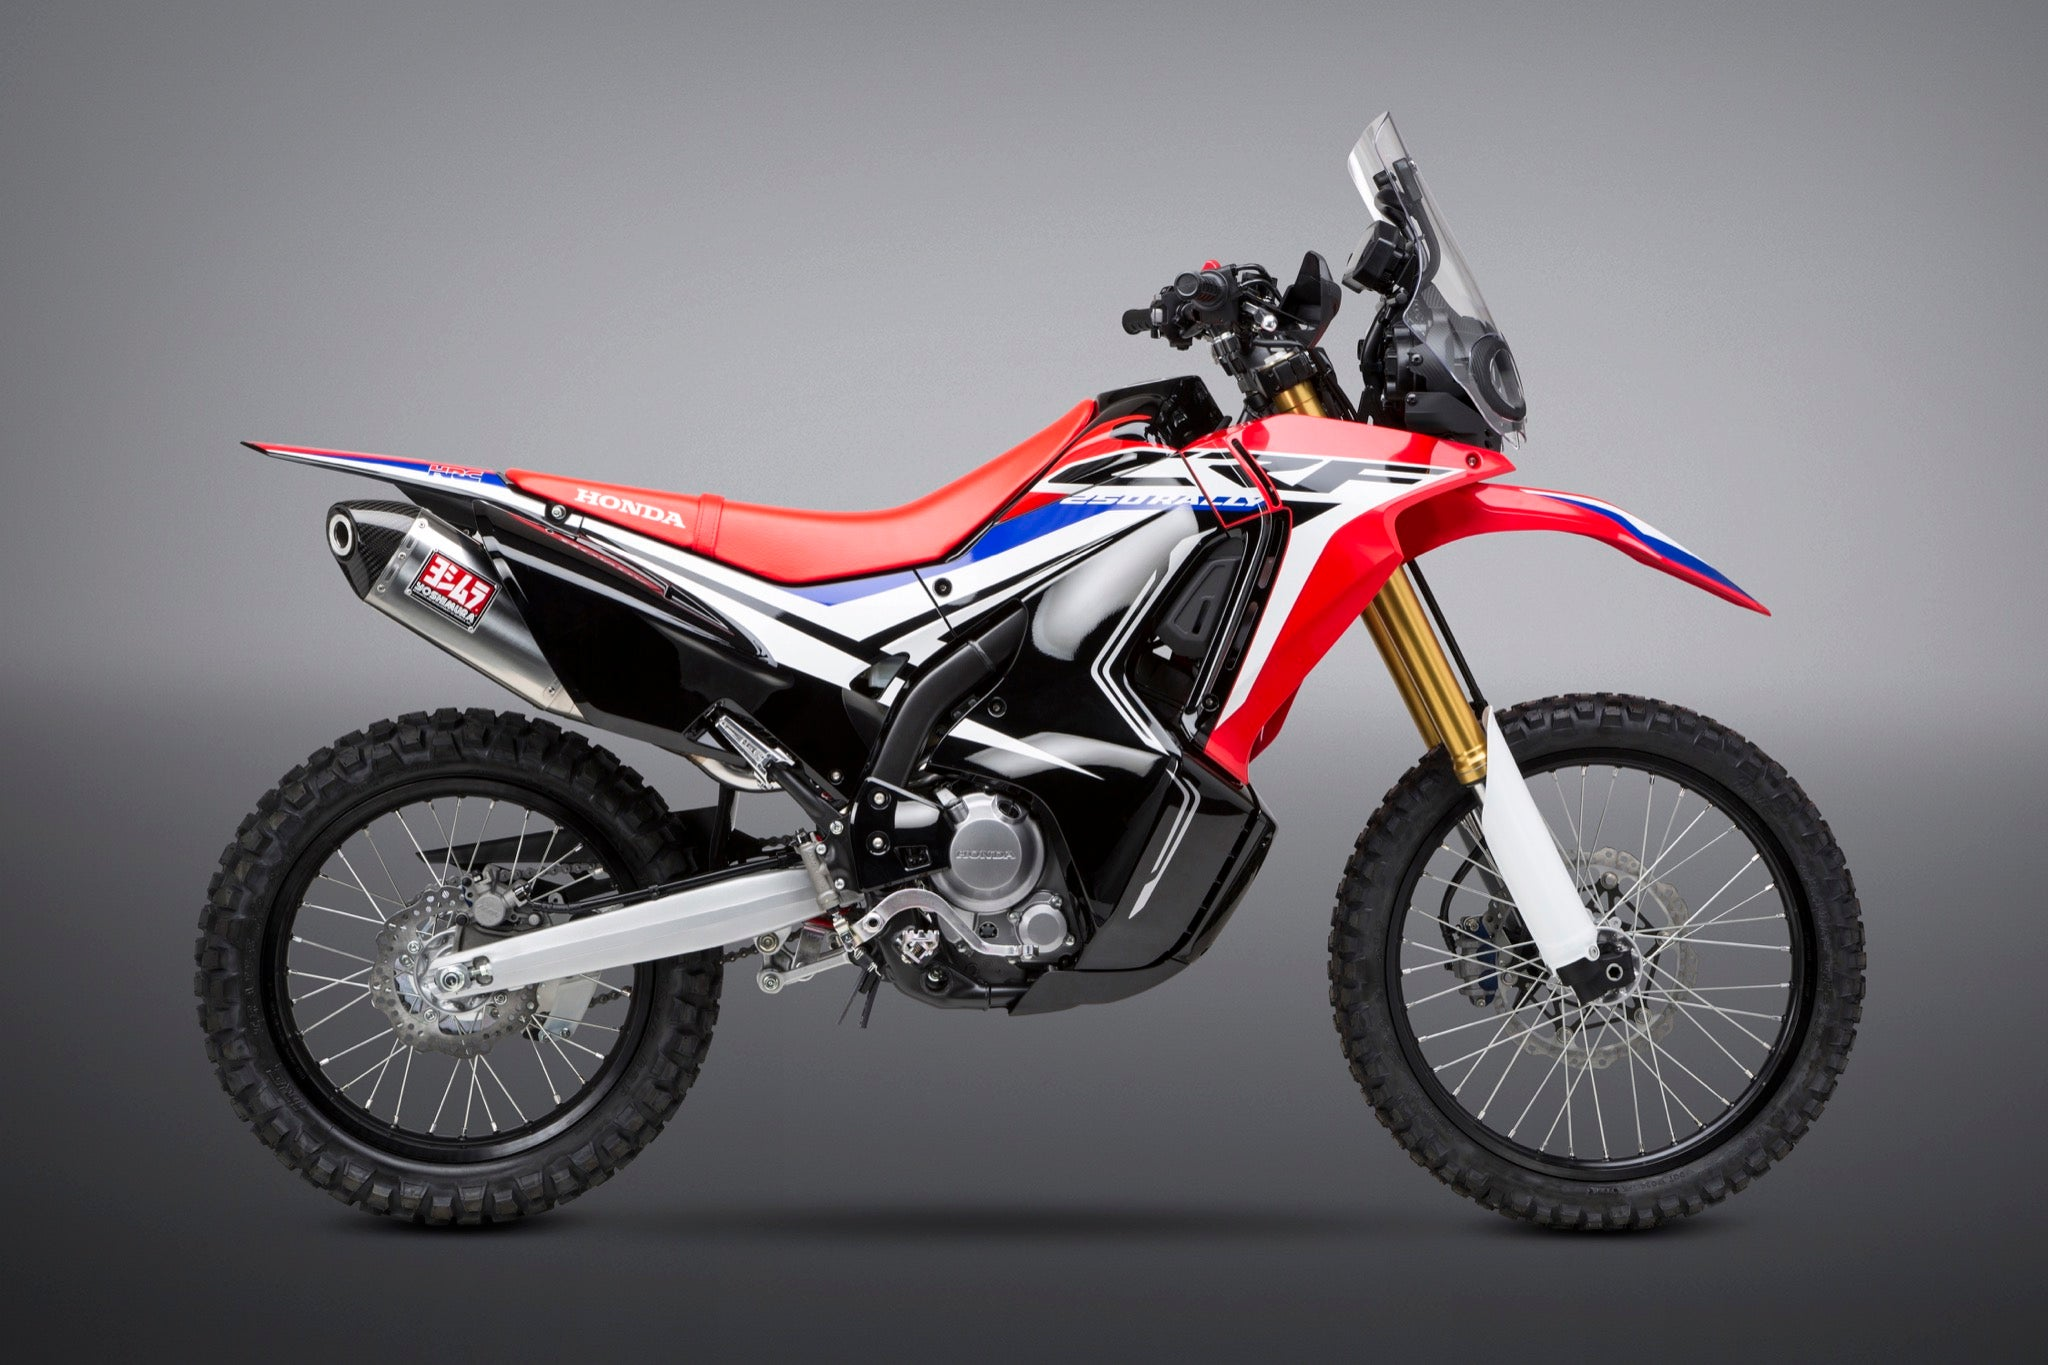 Yoshimura Crf250l Rally 2017 18 Rs 4 Stainless Exhaust Stainless